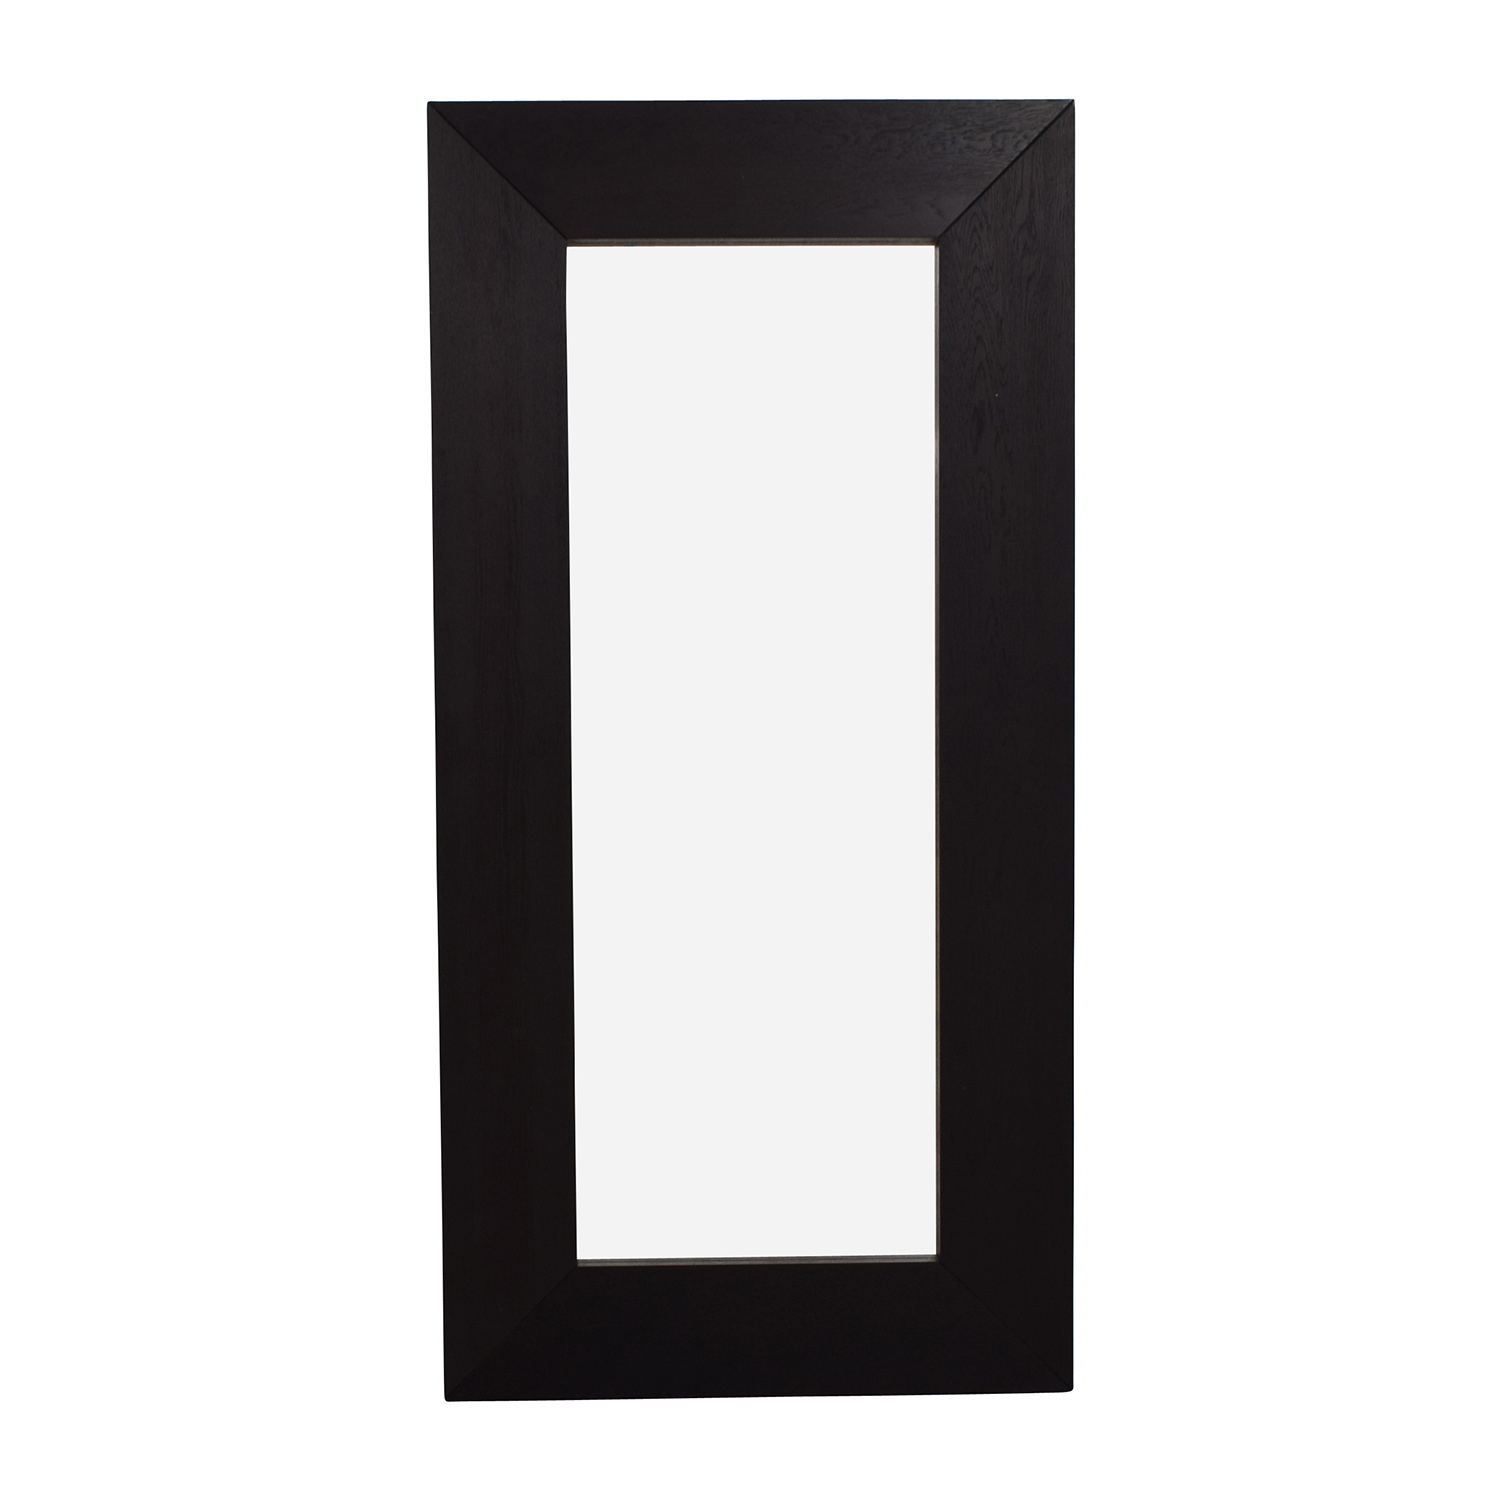 Crate and Barrel Crate & Barrel Large Standing Mirror Black